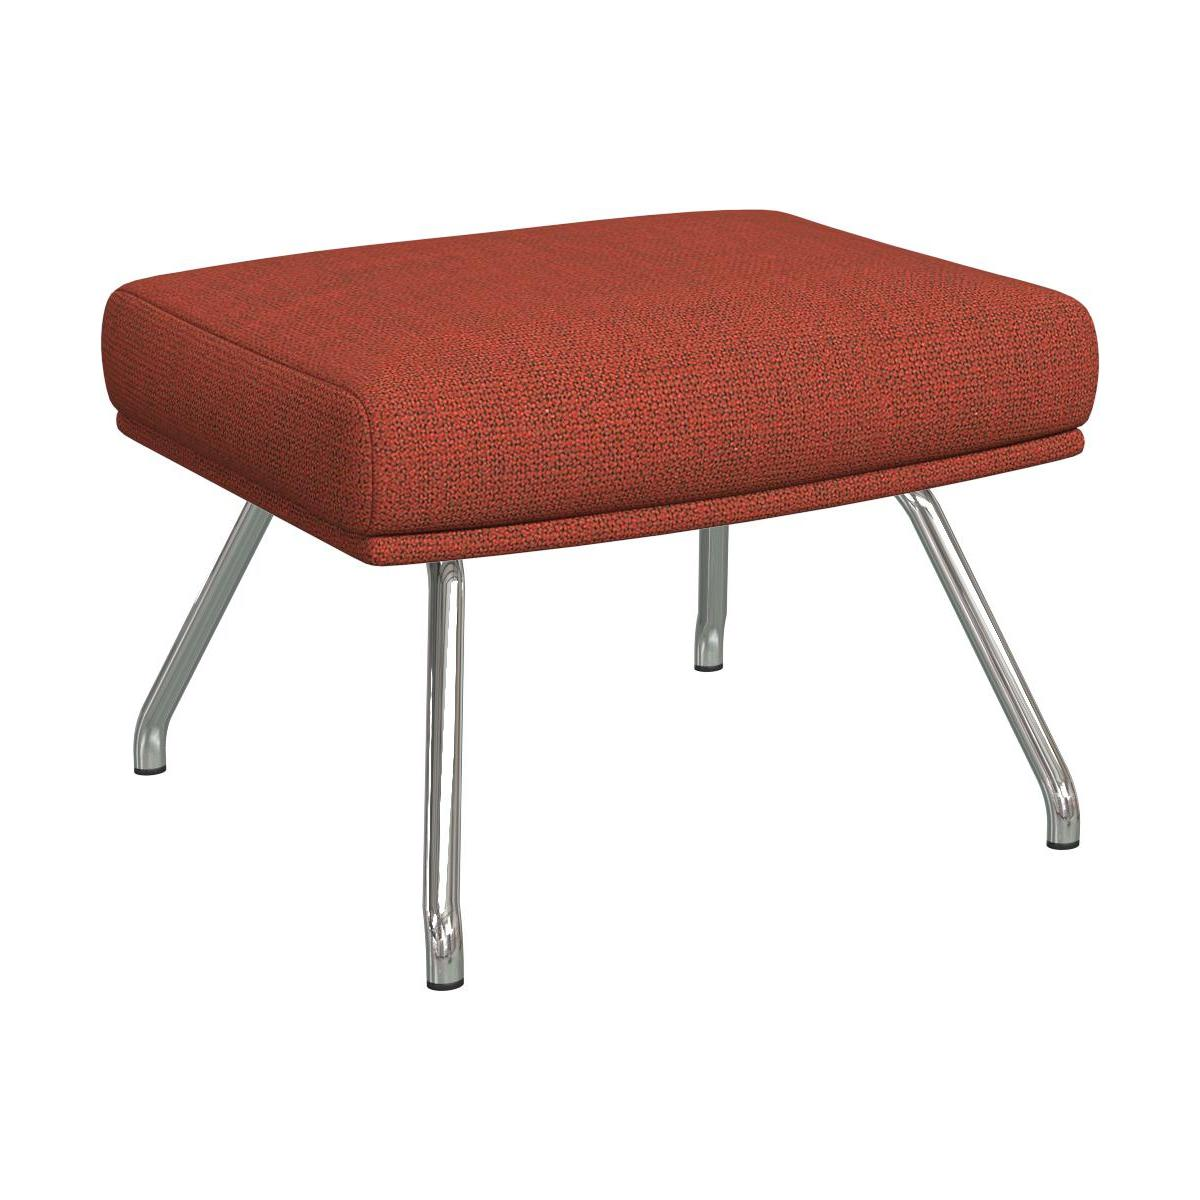 Footstool in Fasoli fabric, warm red rock with chromed metal legs n°1